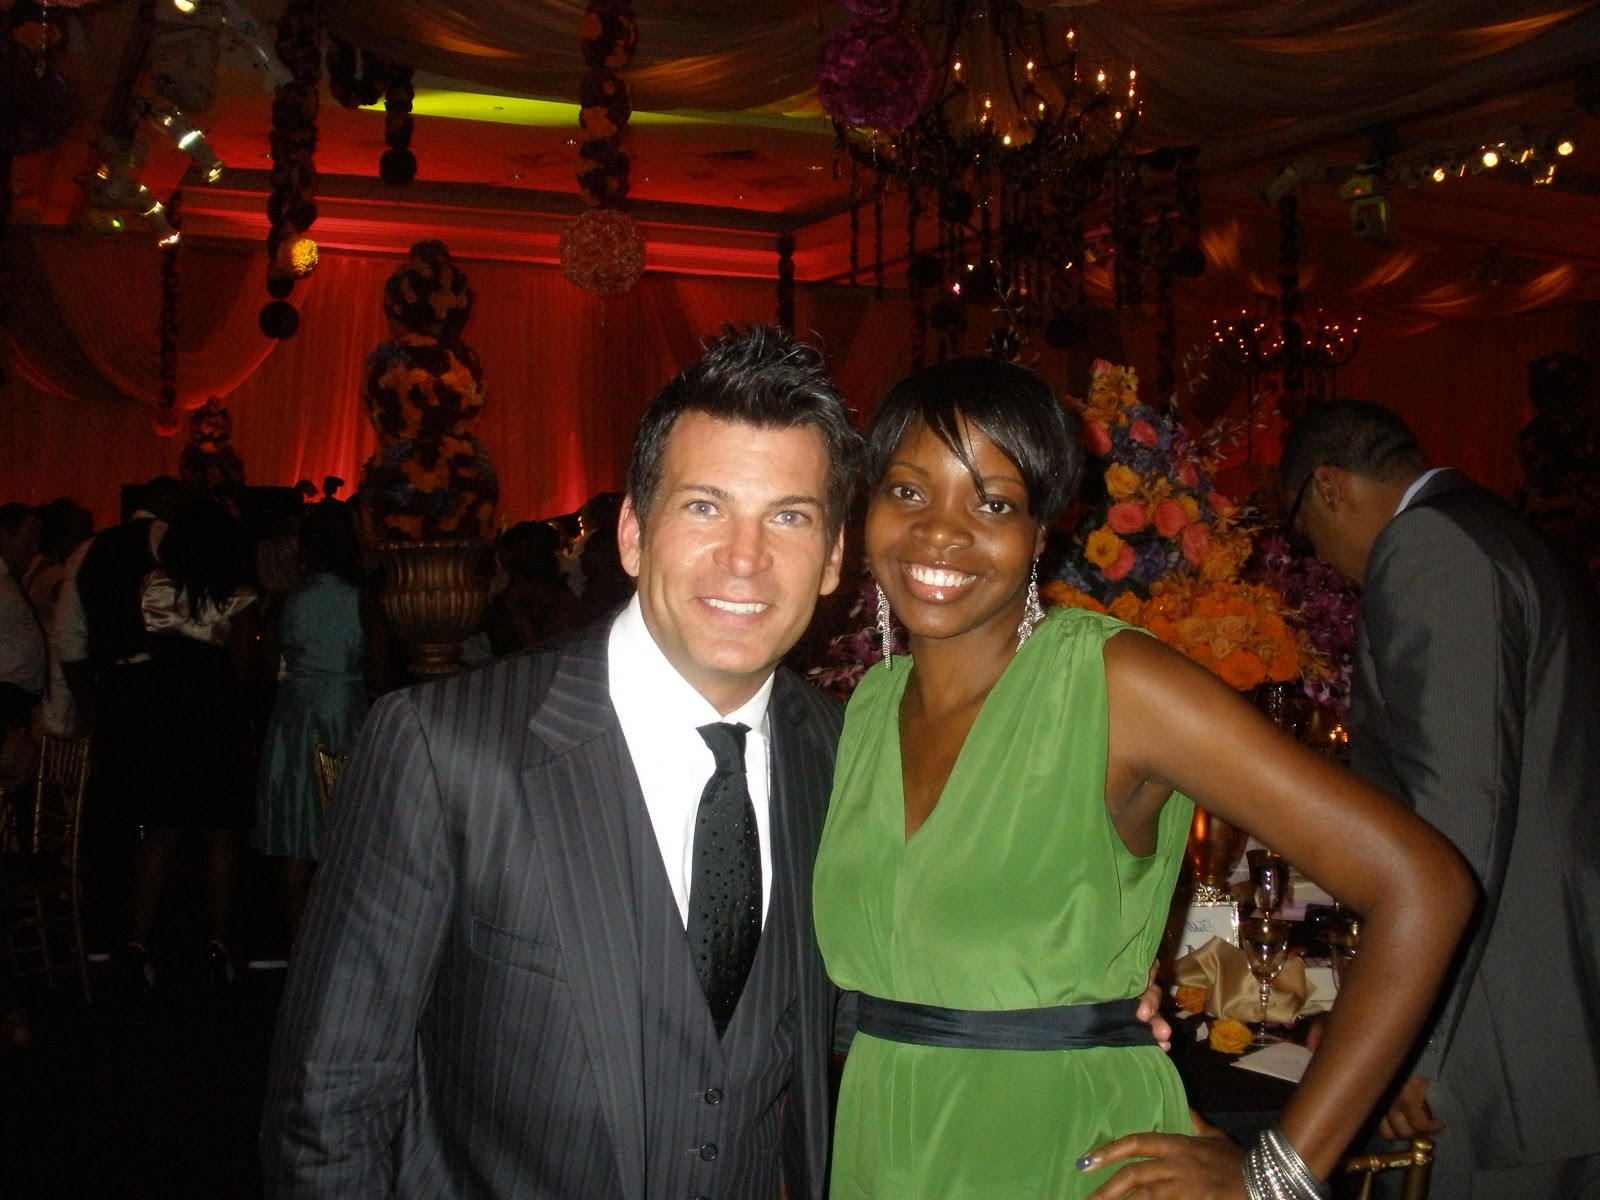 Me & David Tutera during the